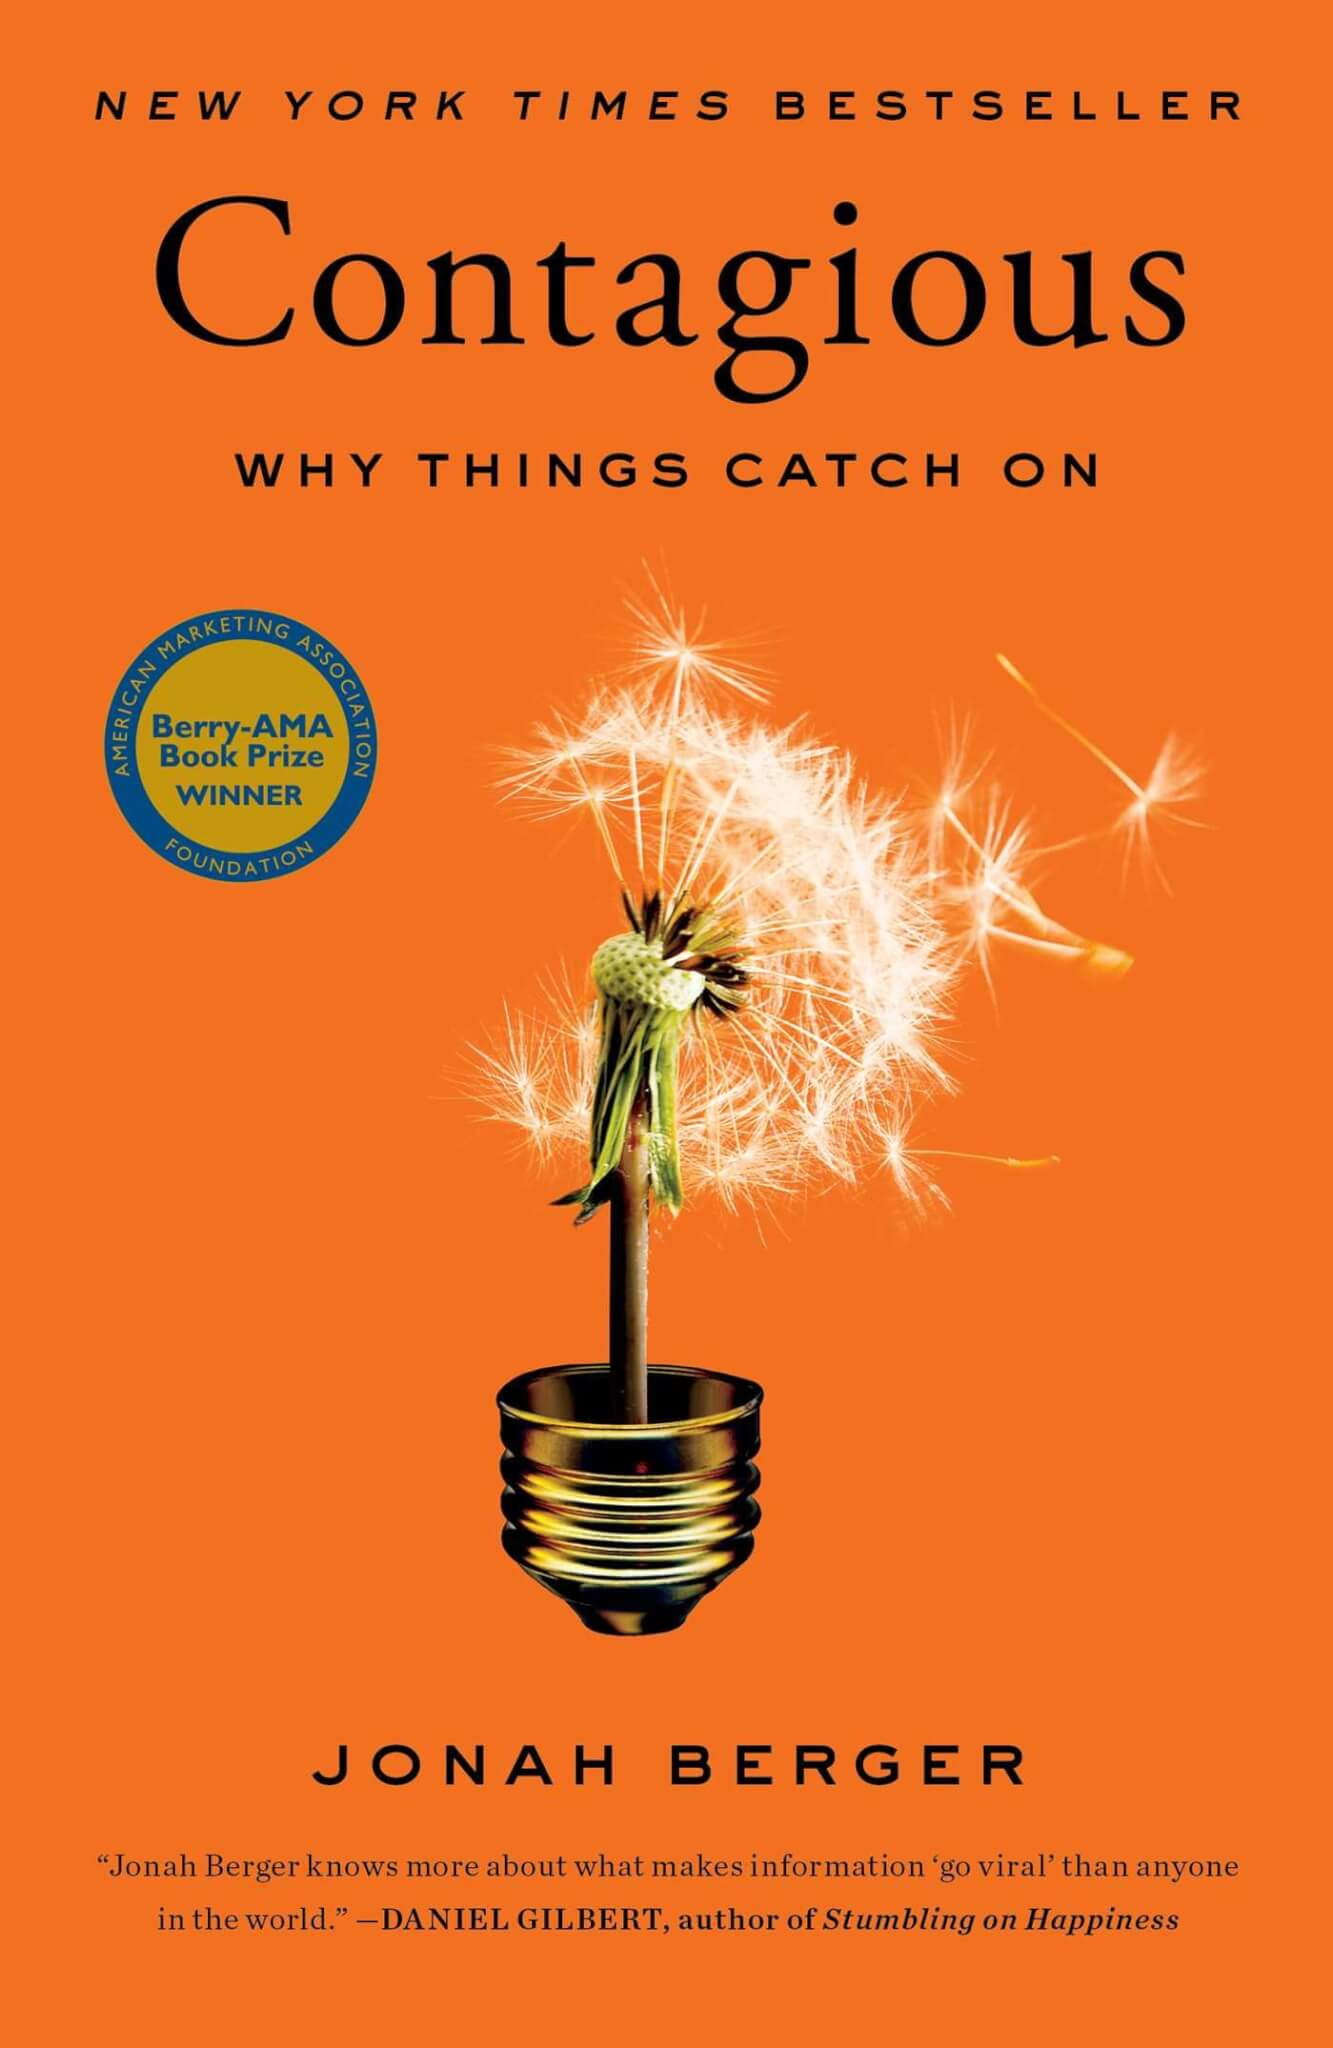 Contagious - why things catch on (www.lodiplanting.com)